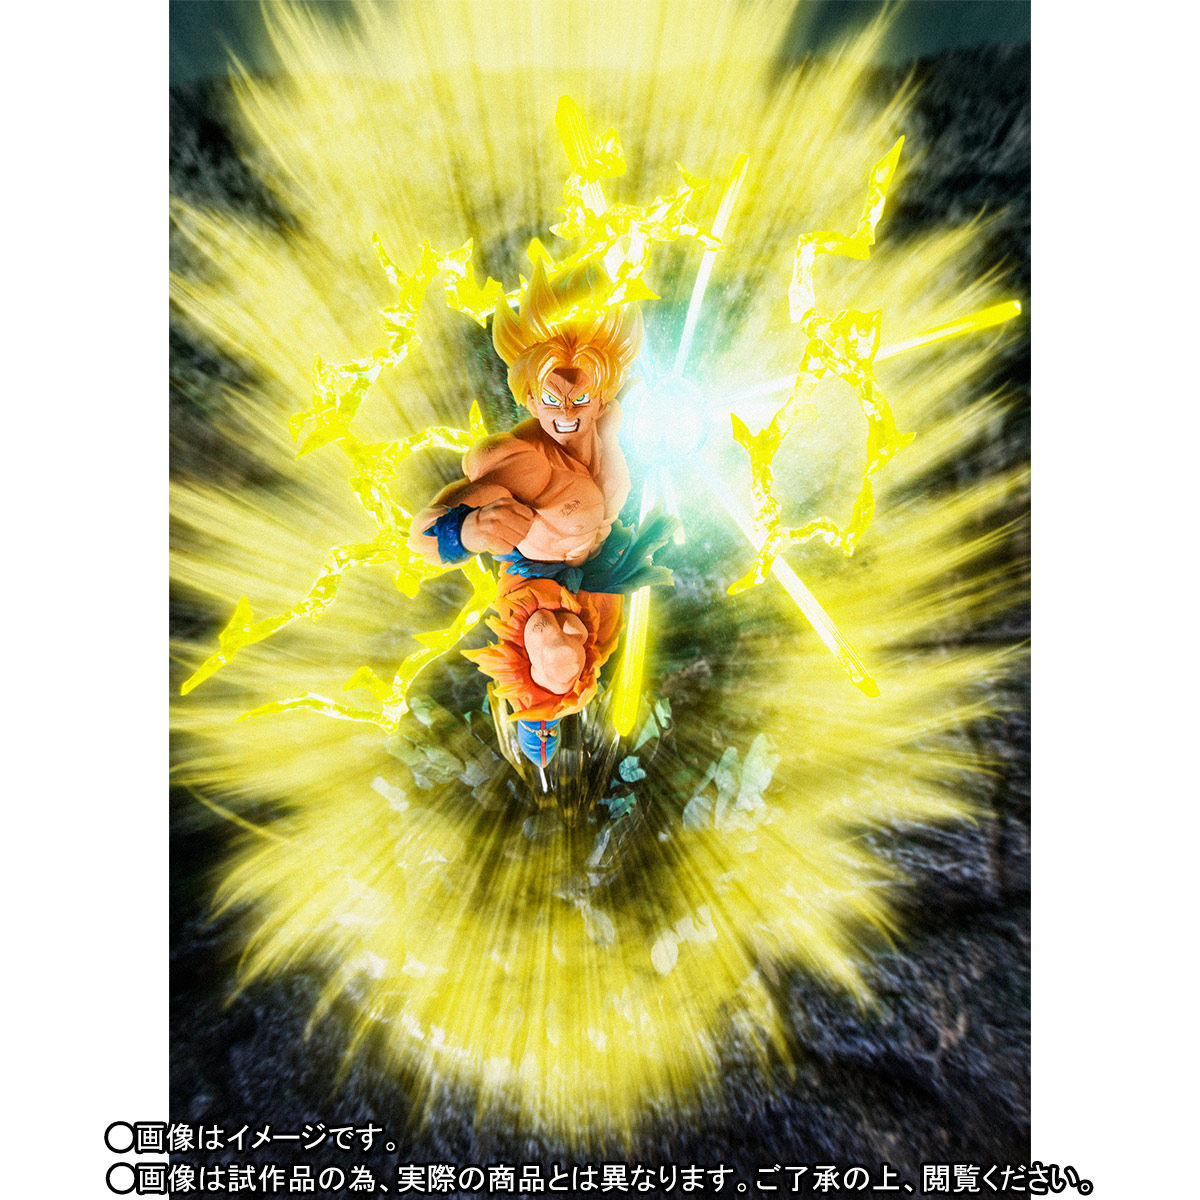 Link a goku figu zero – burning battle – 4